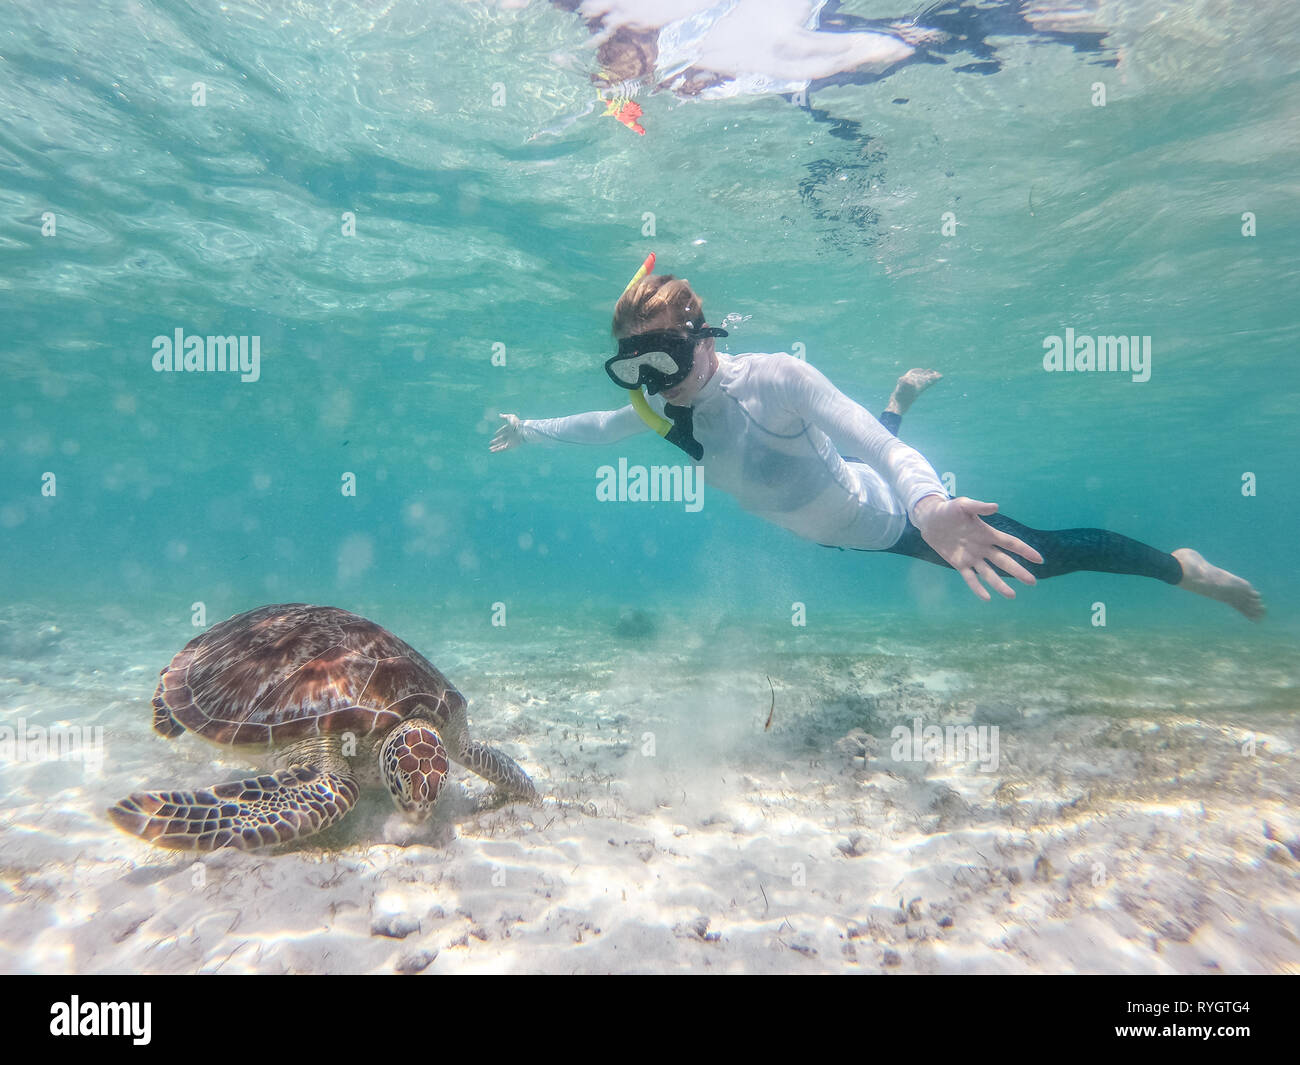 Woman on vacations wearing snokeling mask swimming with sea turtle in turquoise blue water of Gili islands, Indonesia. Underwater photo. Stock Photo